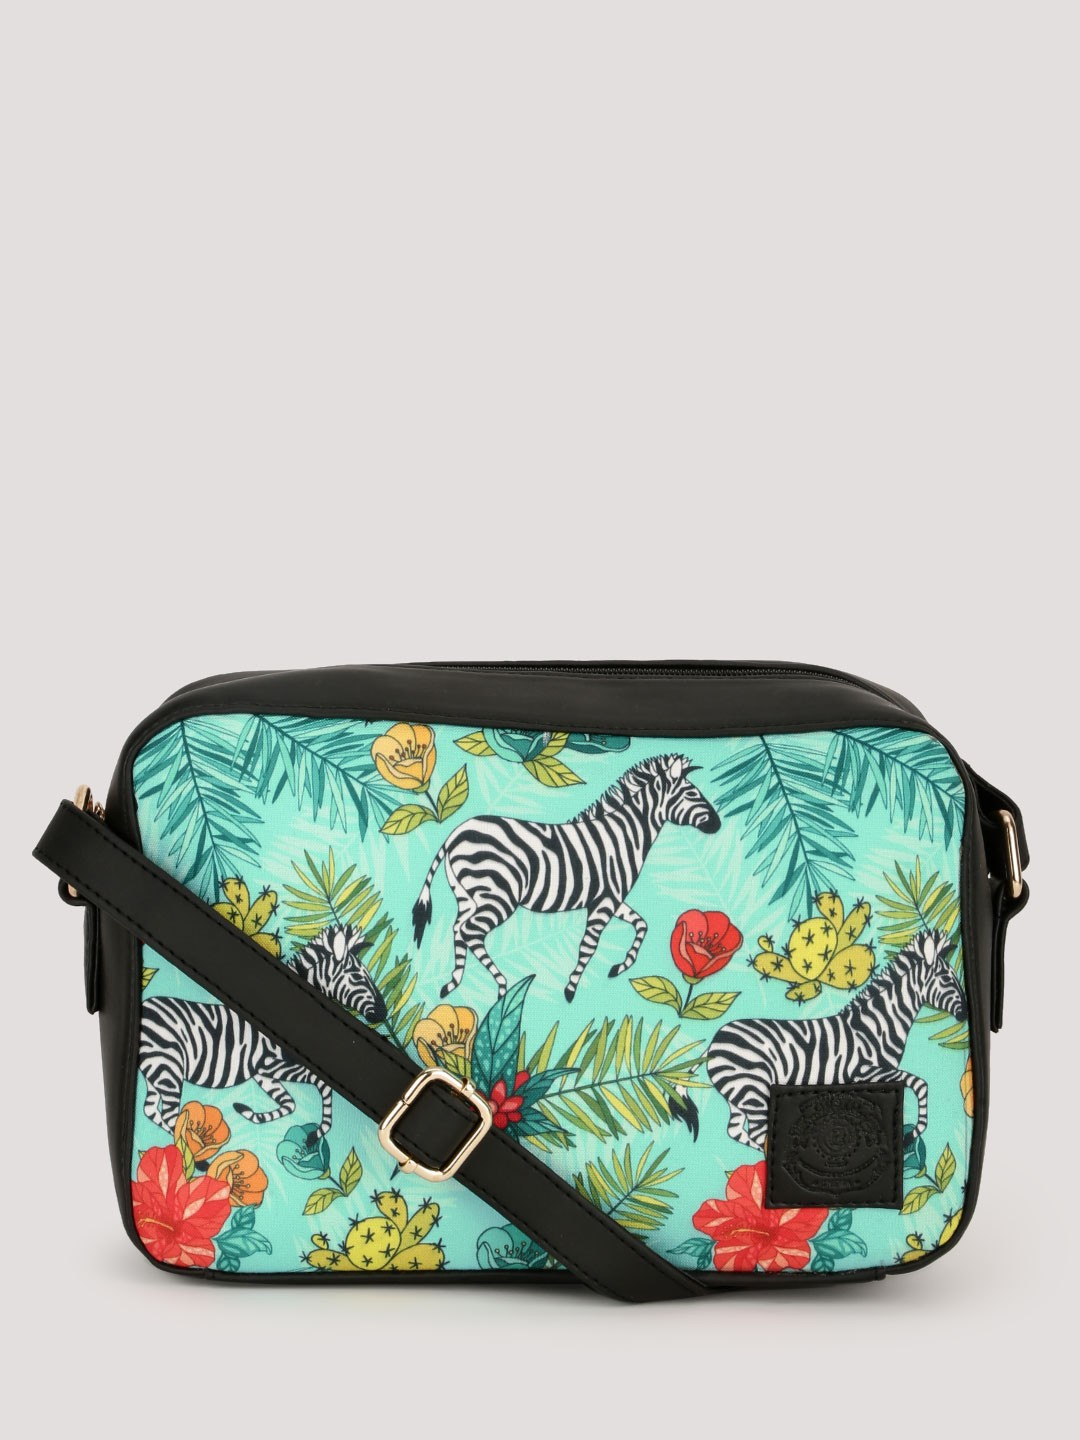 Buy GUSTO Printed Sling Bag For Women - Women's Sling Bags Online ...